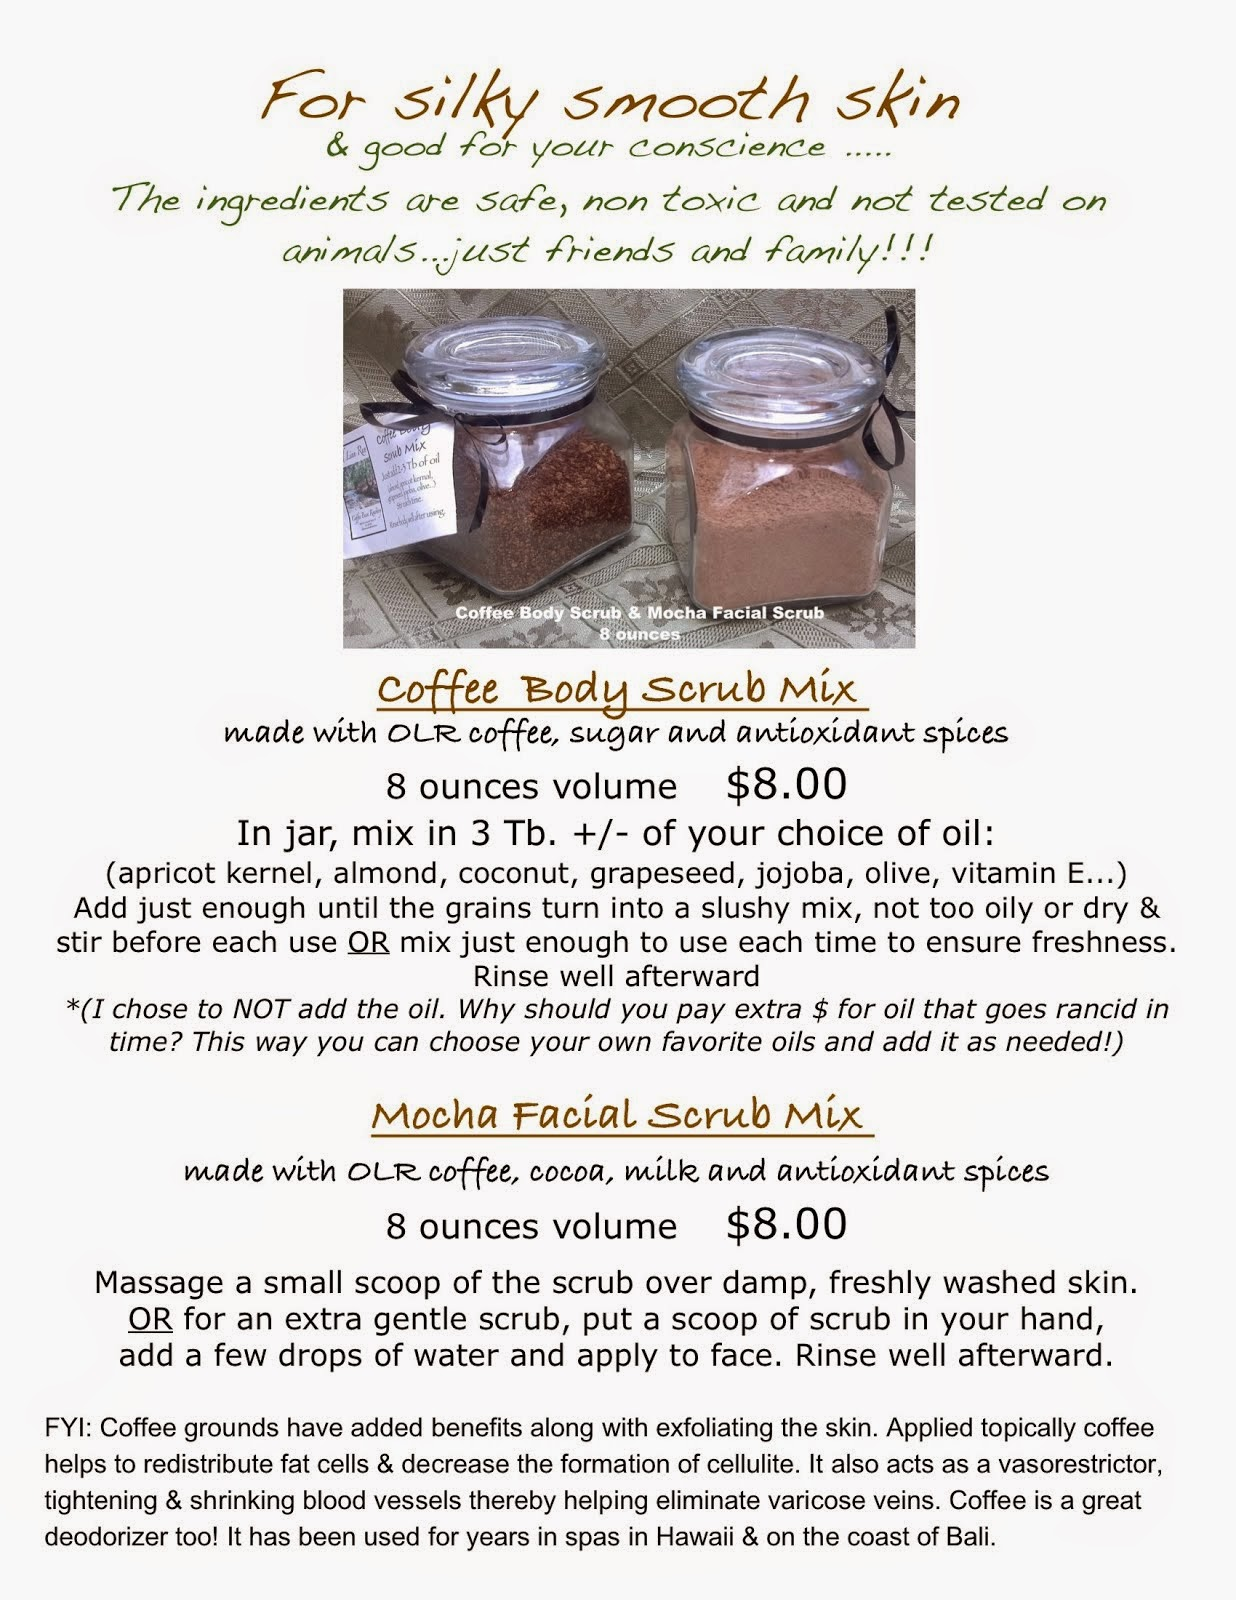 Coffee body scrubs & Mocha facial scrubs